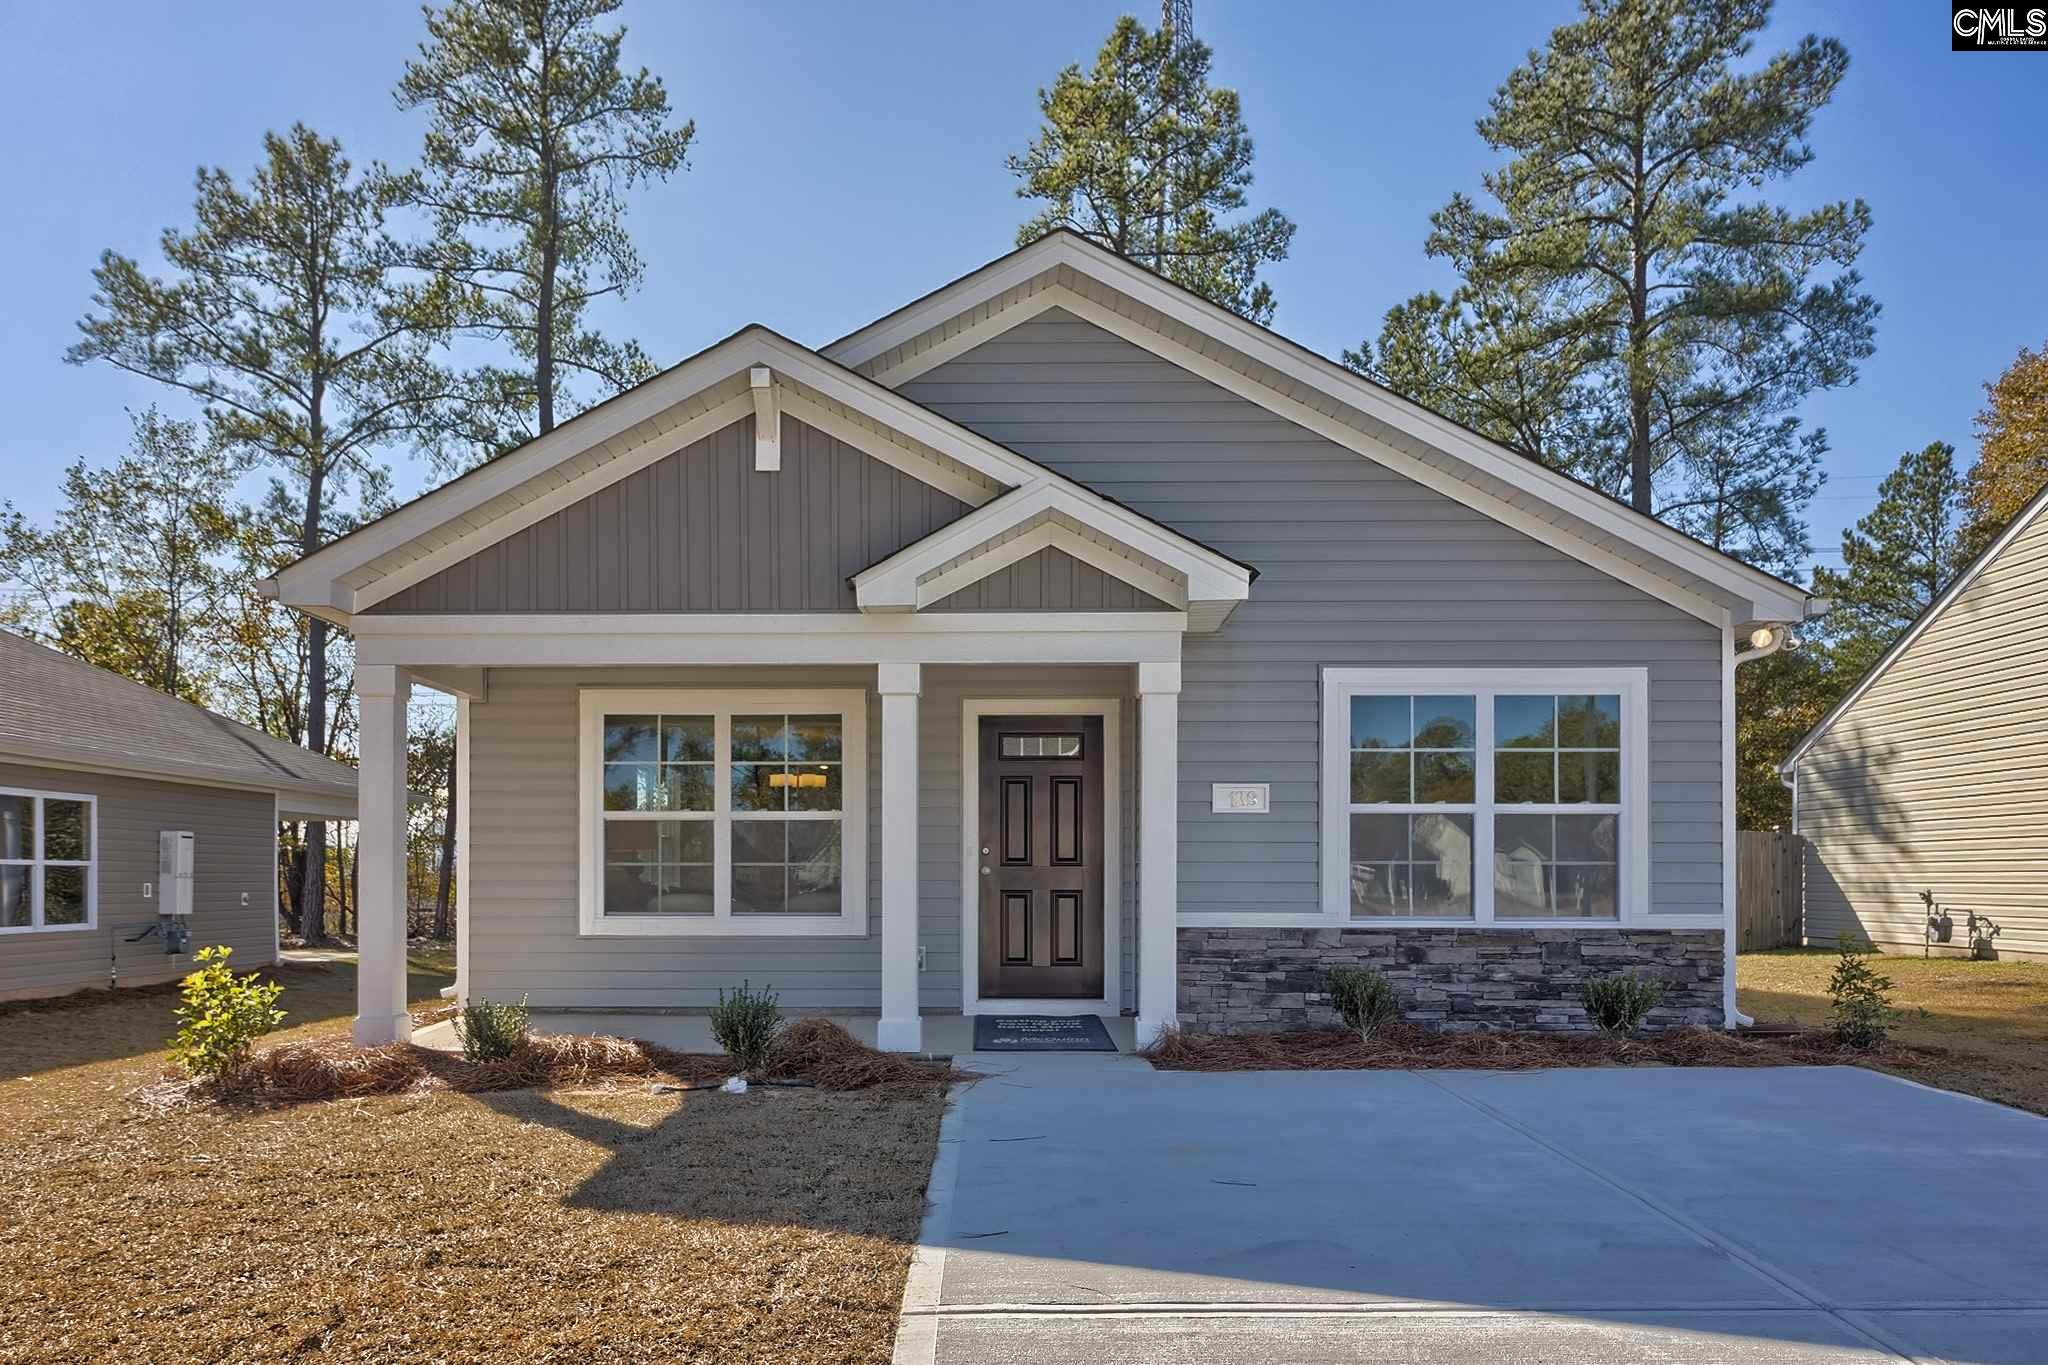 139 Weeping Willow Blythewood, SC 29016